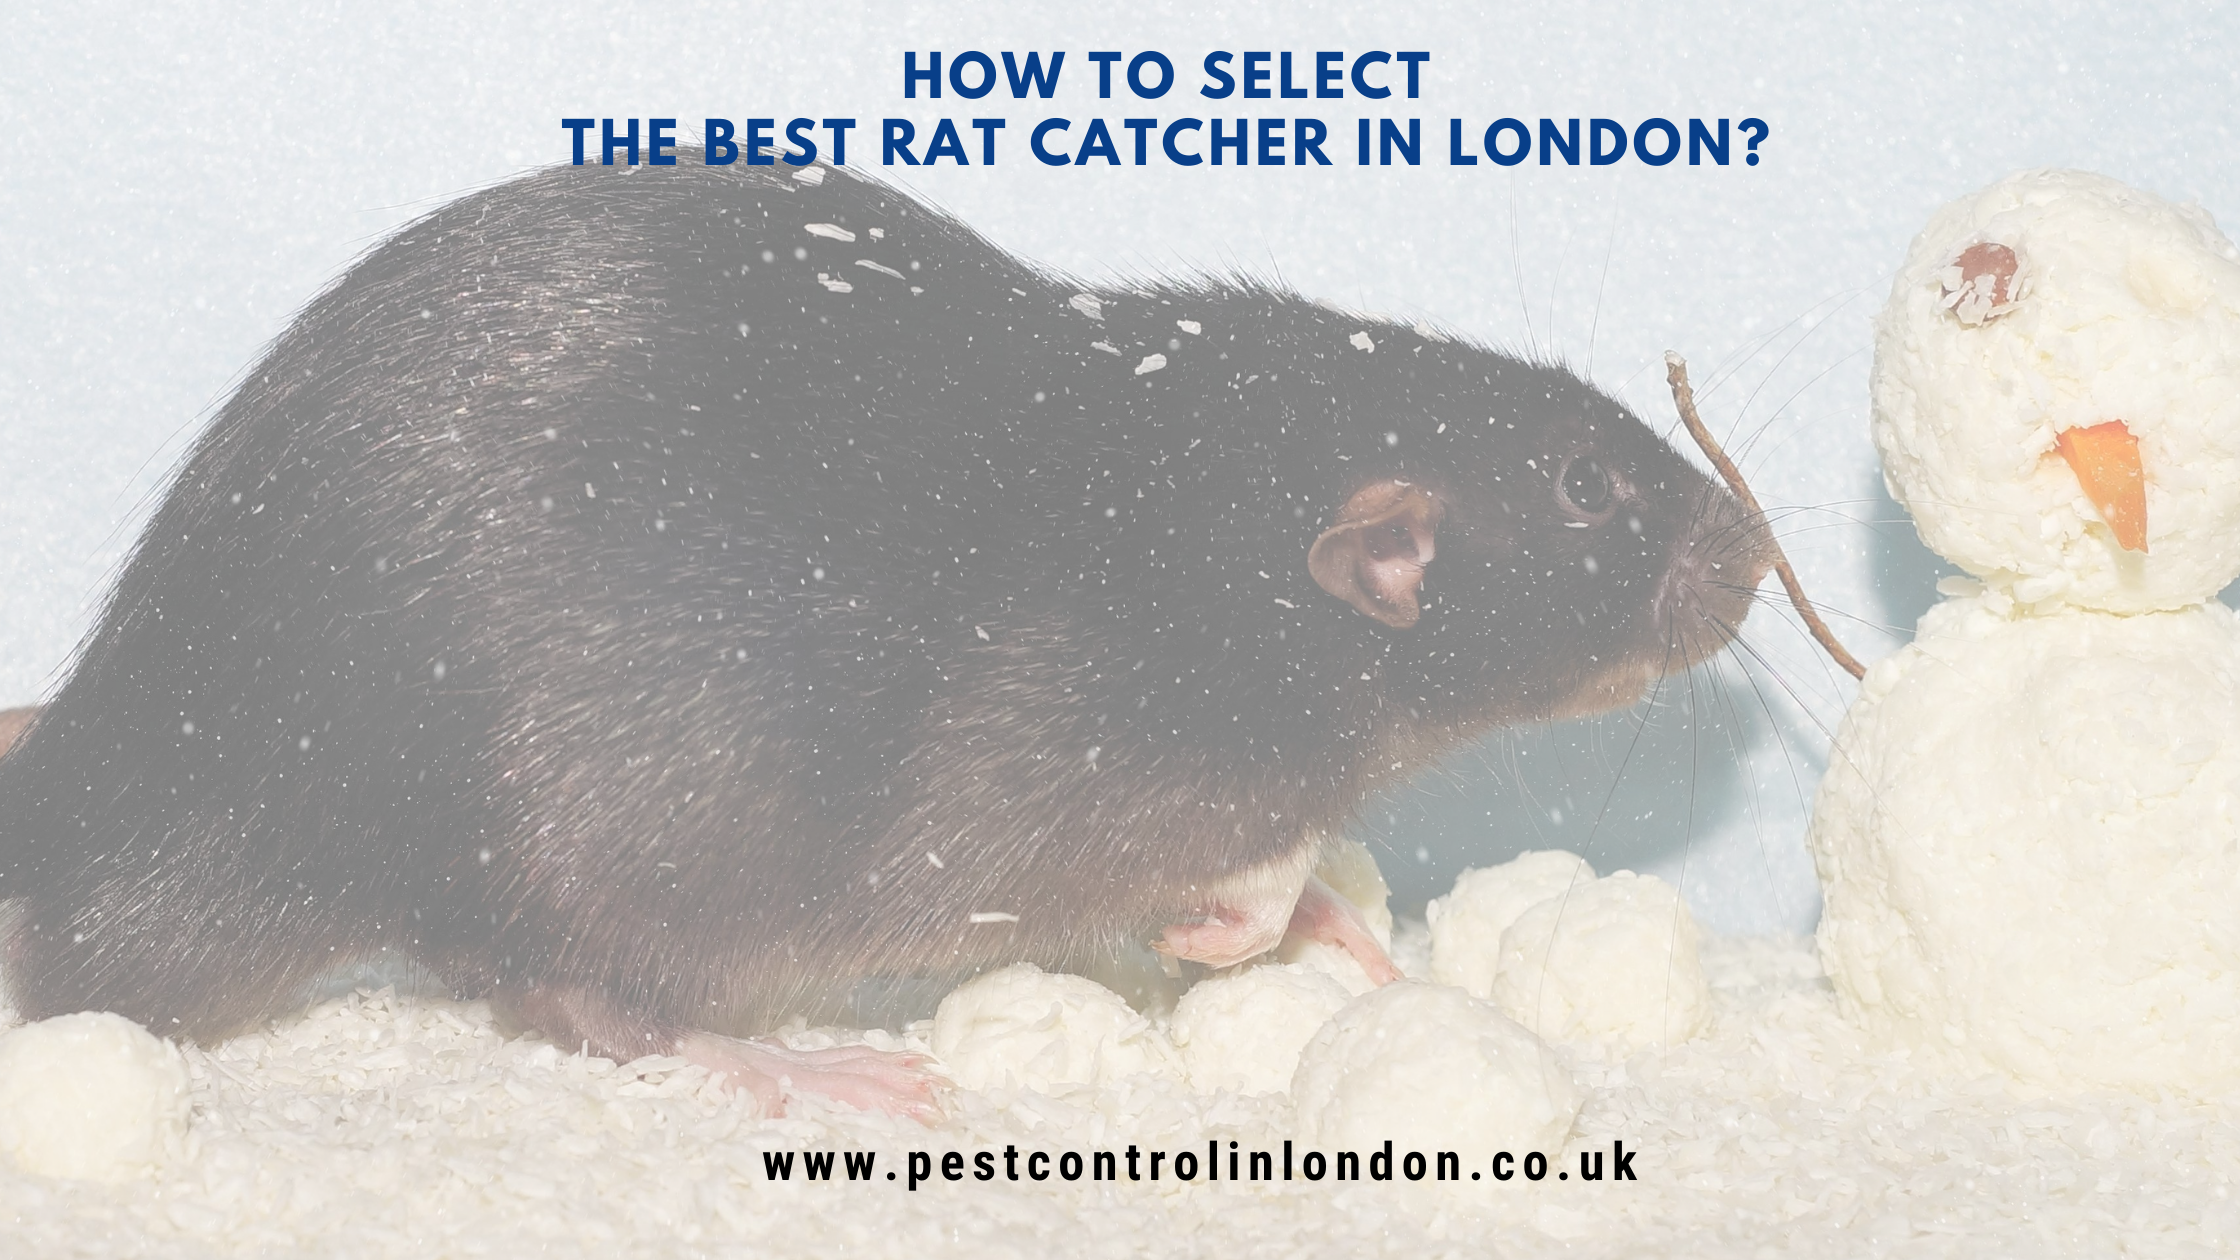 How to select the best rat catcher in London